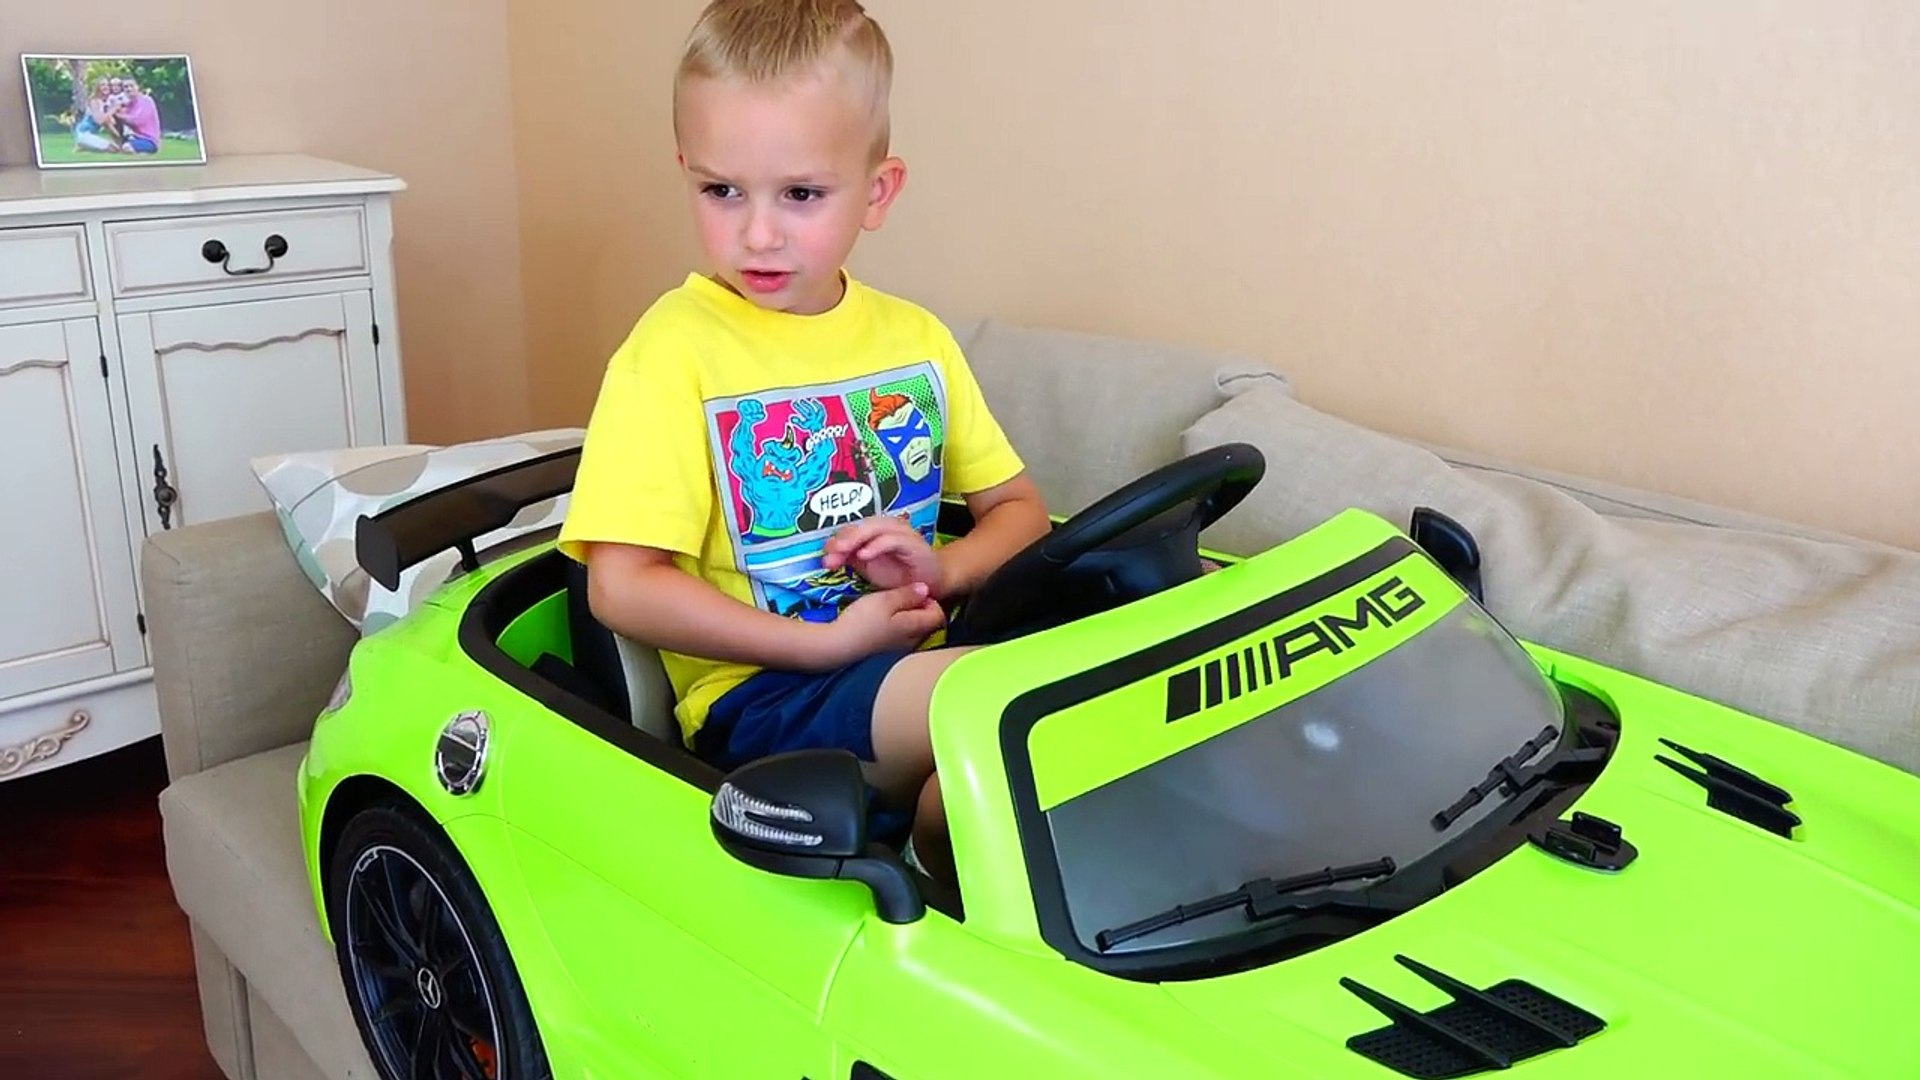 Bad Baby Битва за Машинки Magic Little Driver on Power Wheels Cars / Transform Colored Cars